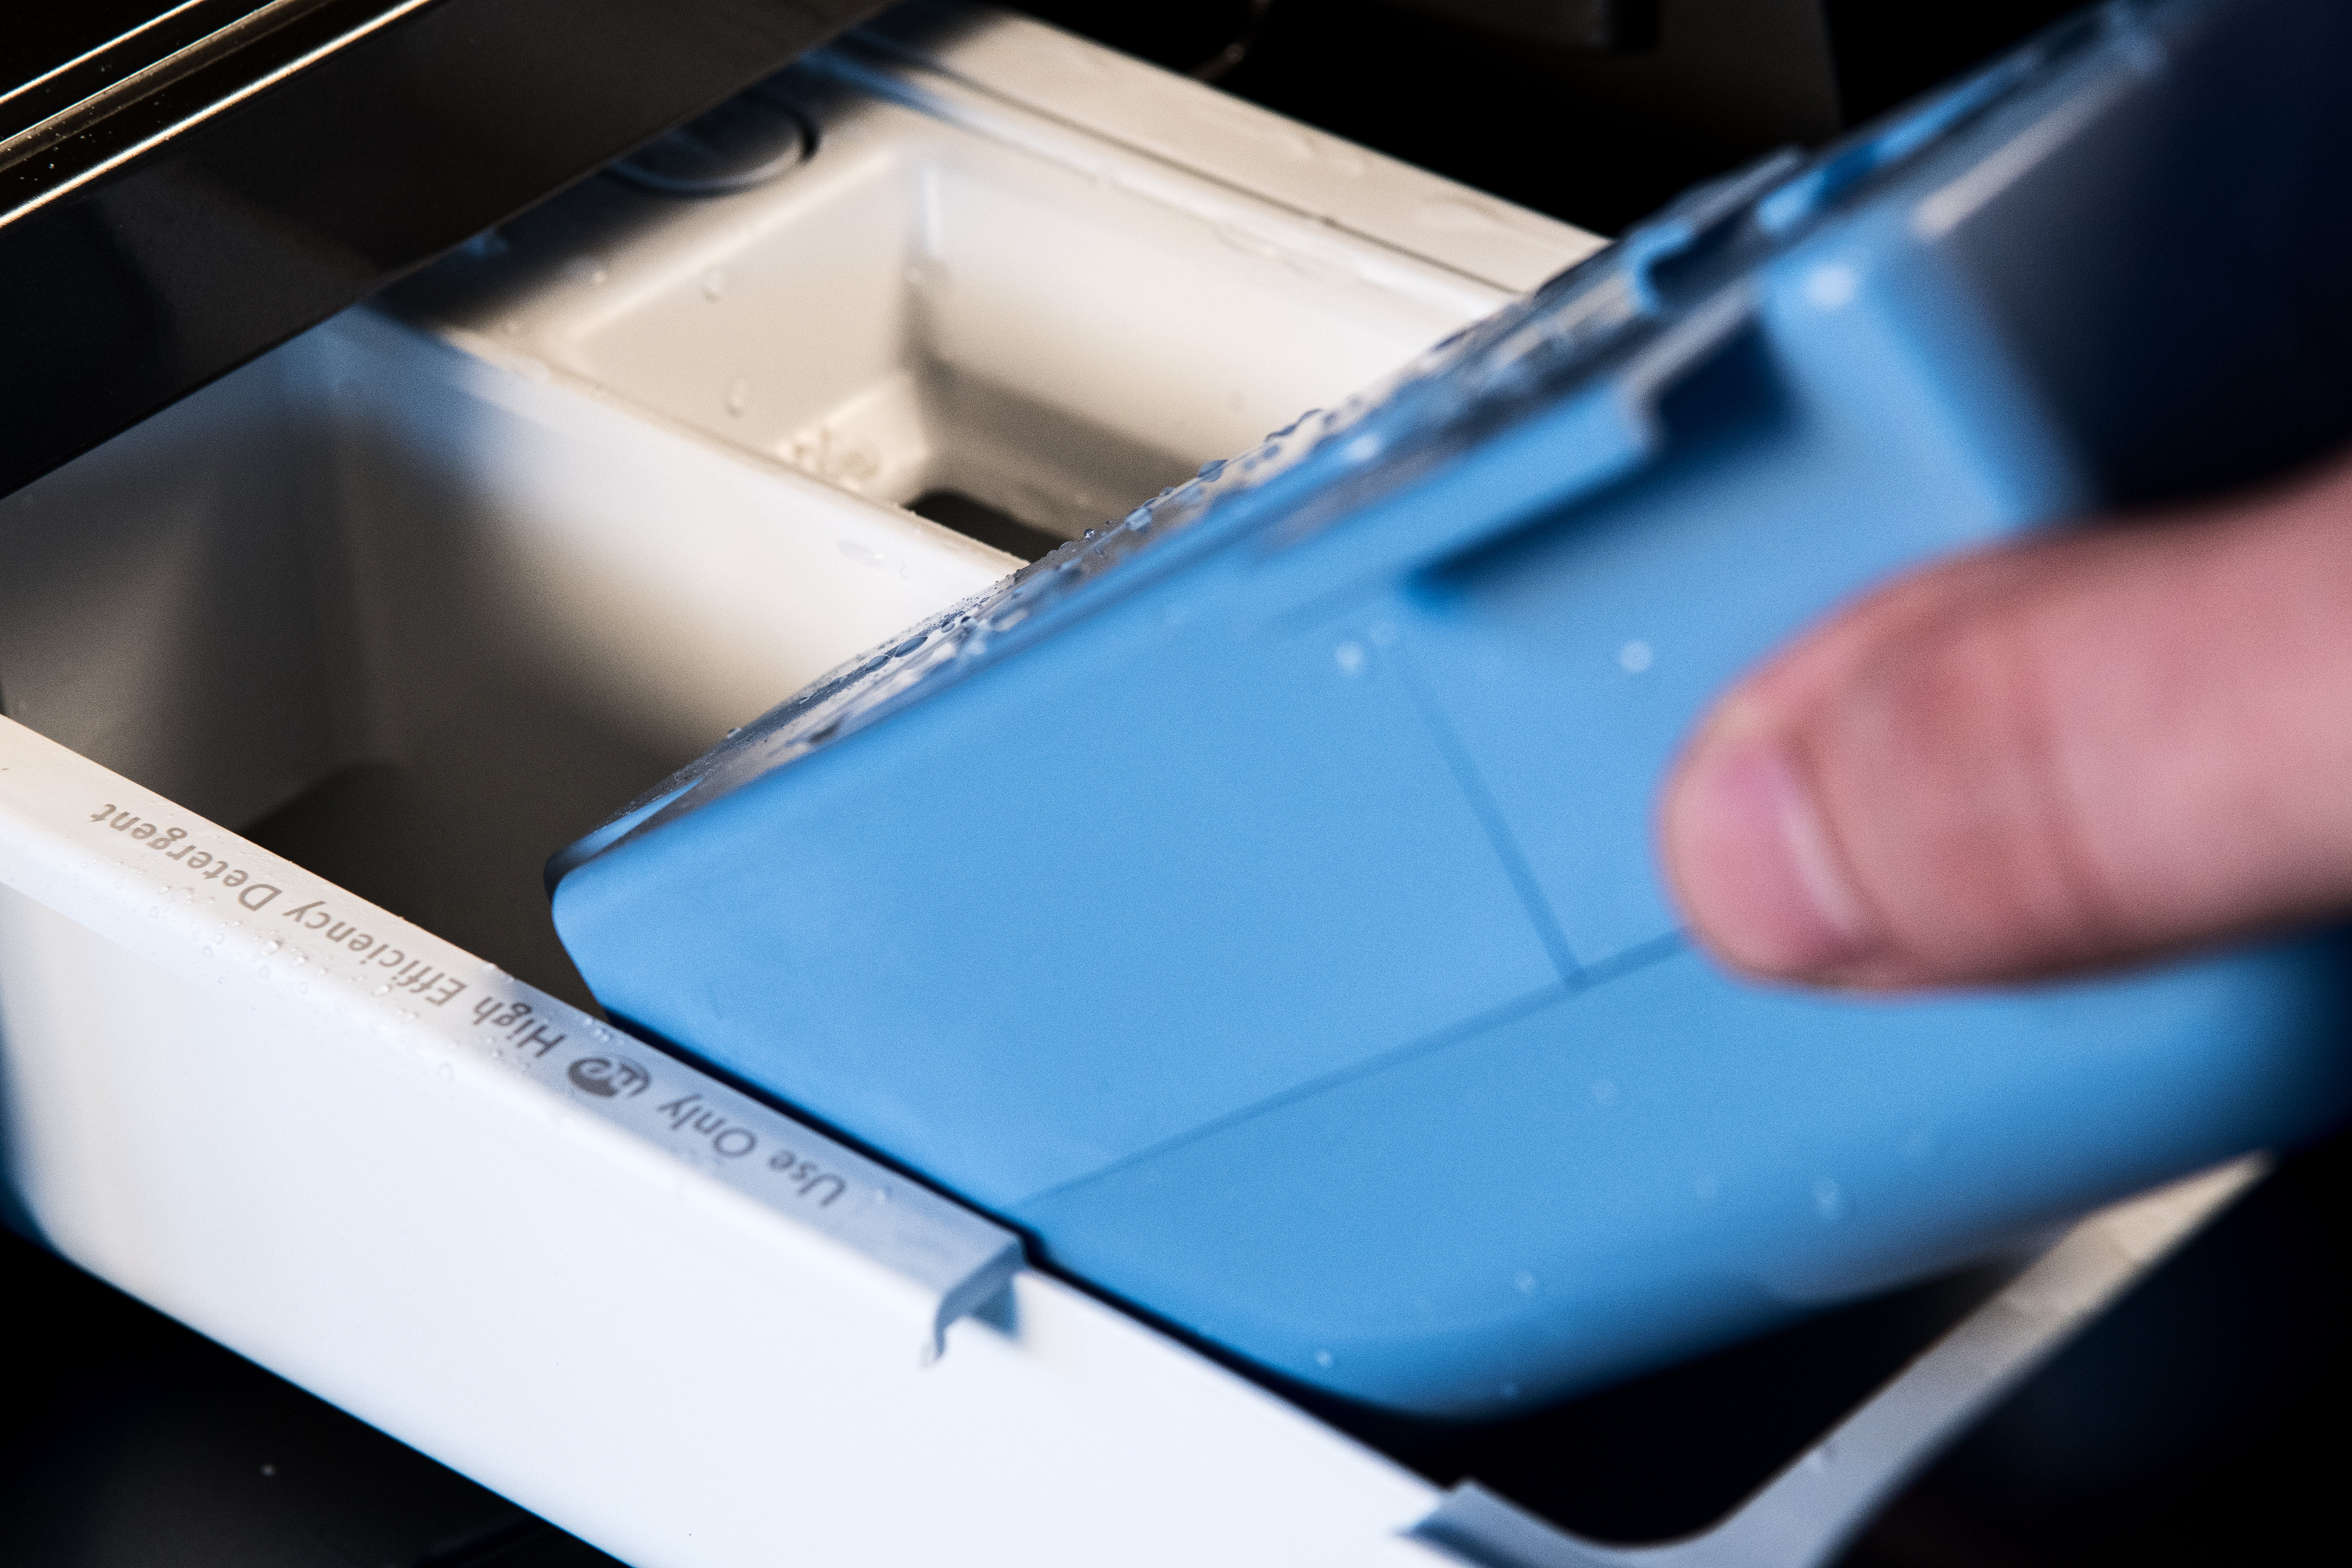 The Optimal Dose cartridge can be removed if you want to measure out your detergent for every cycle.